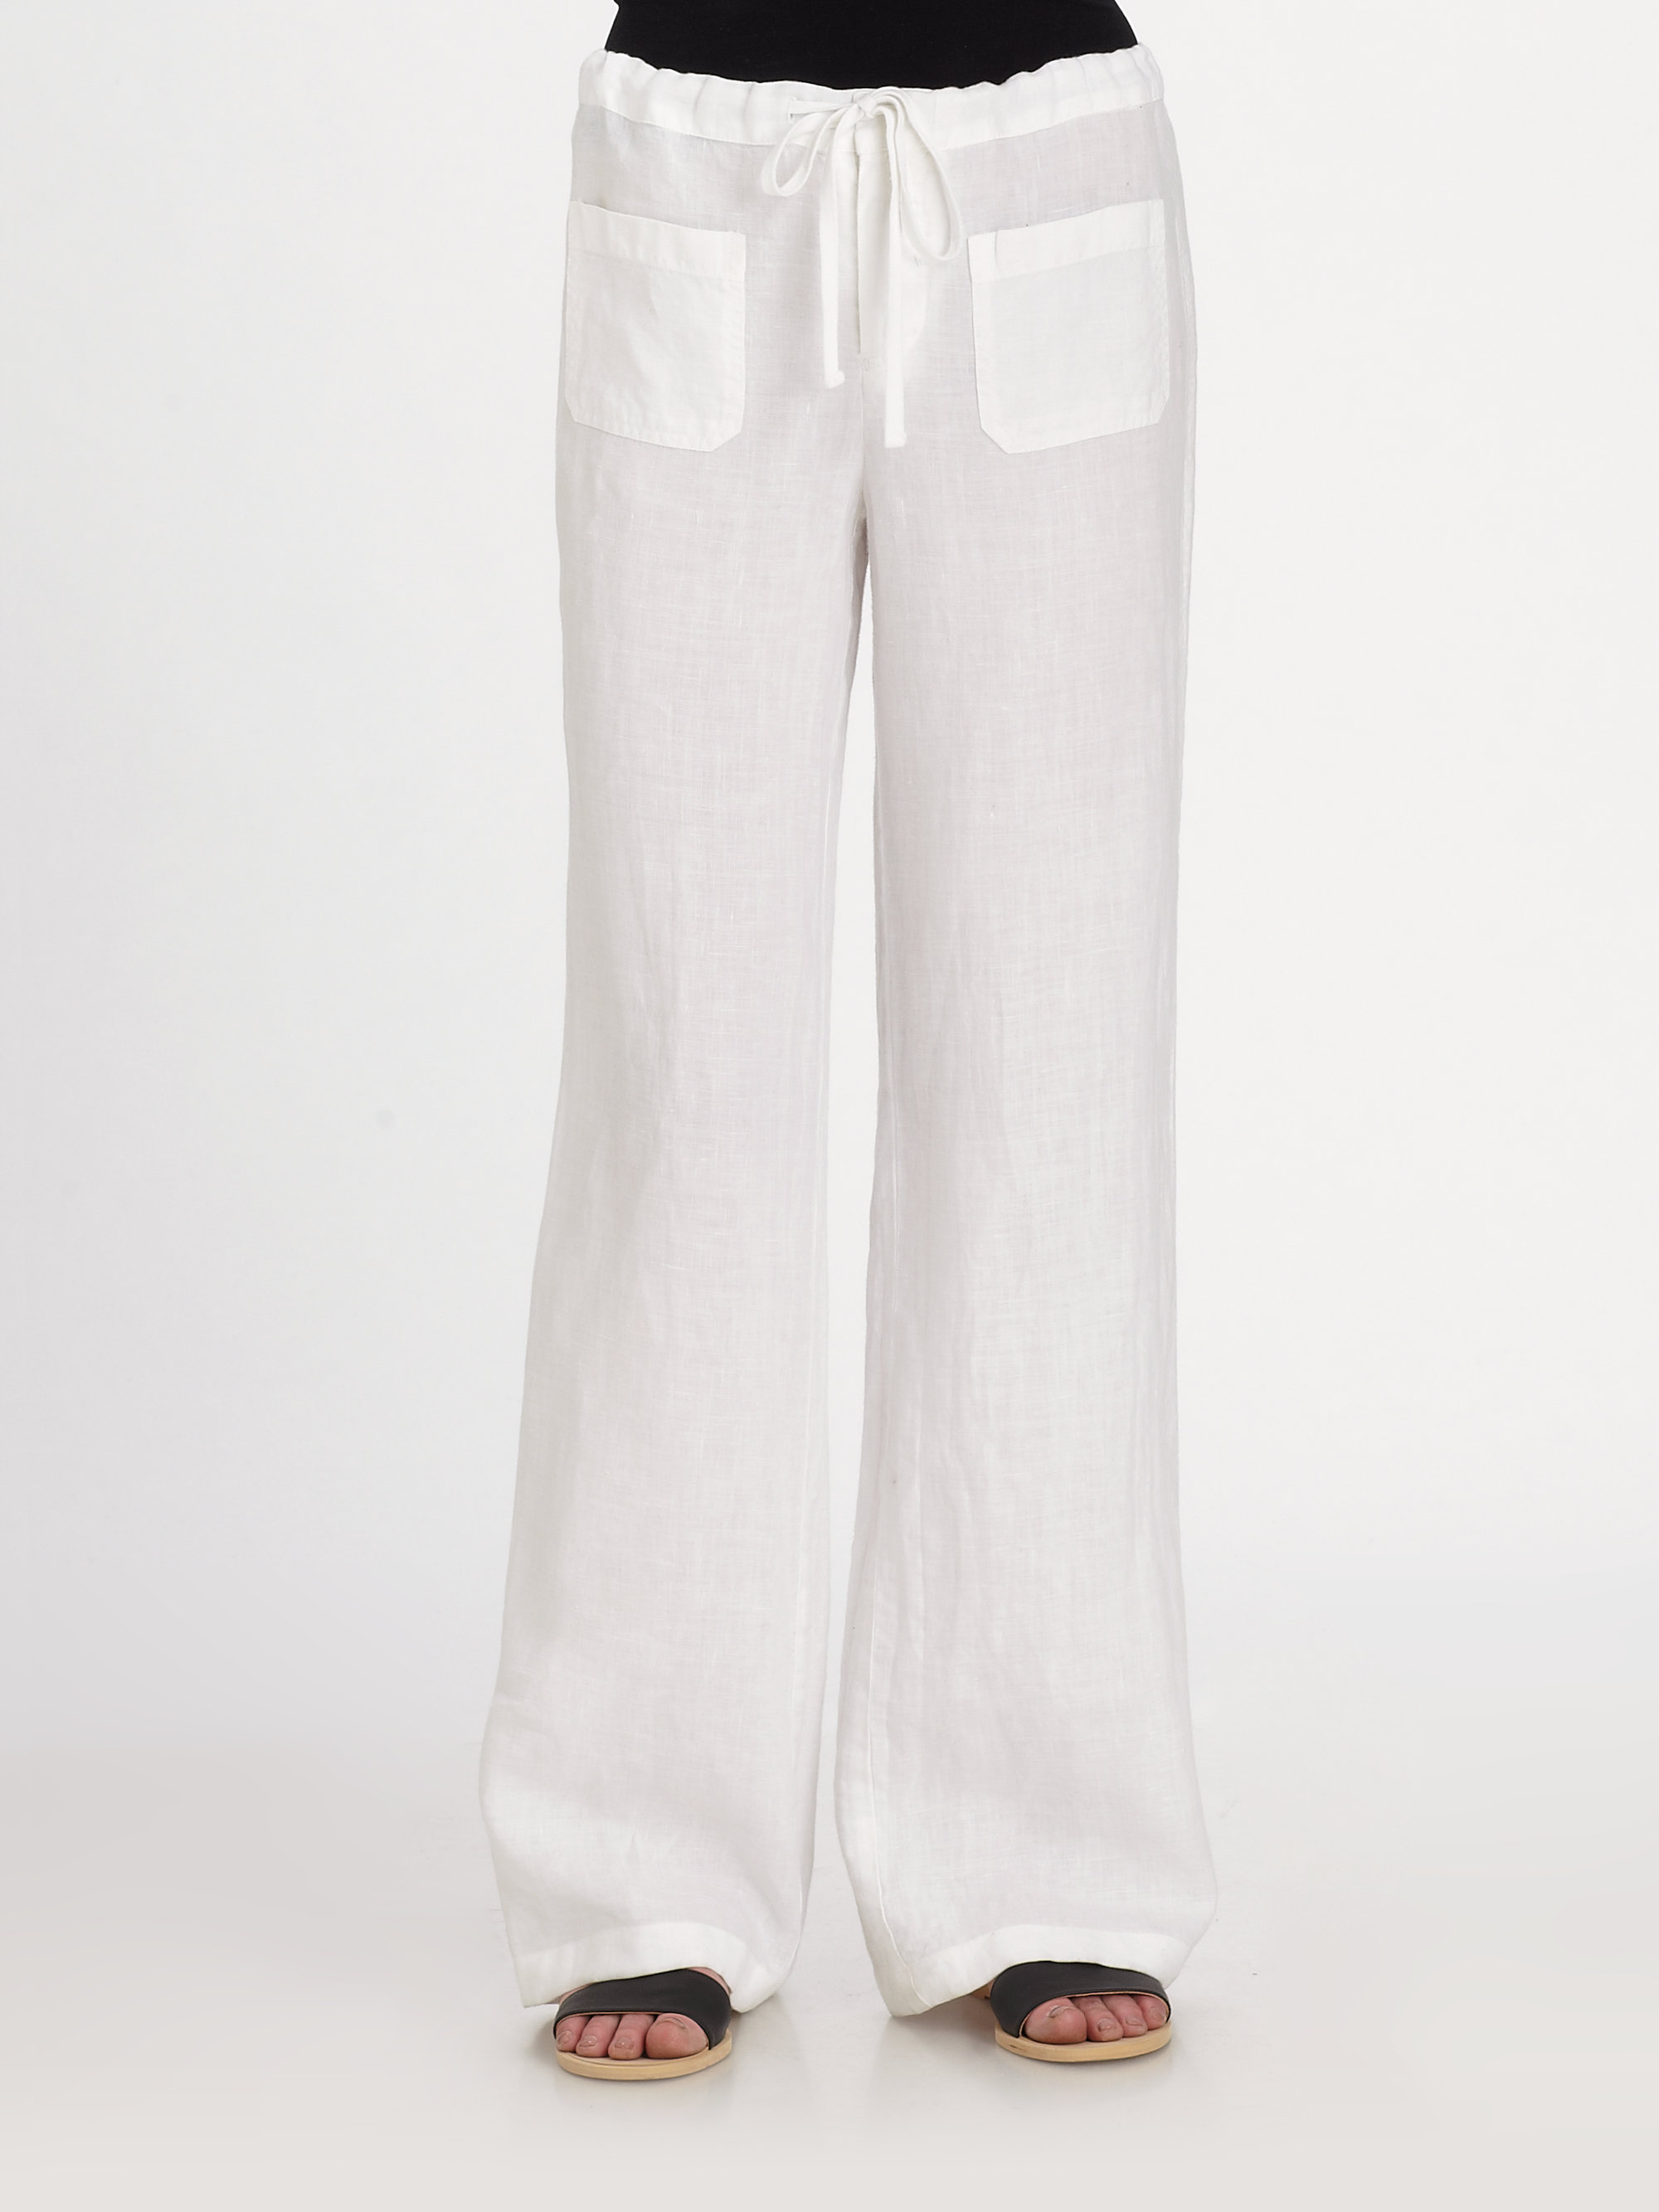 Vince Linen Beach Pants in White | Lyst